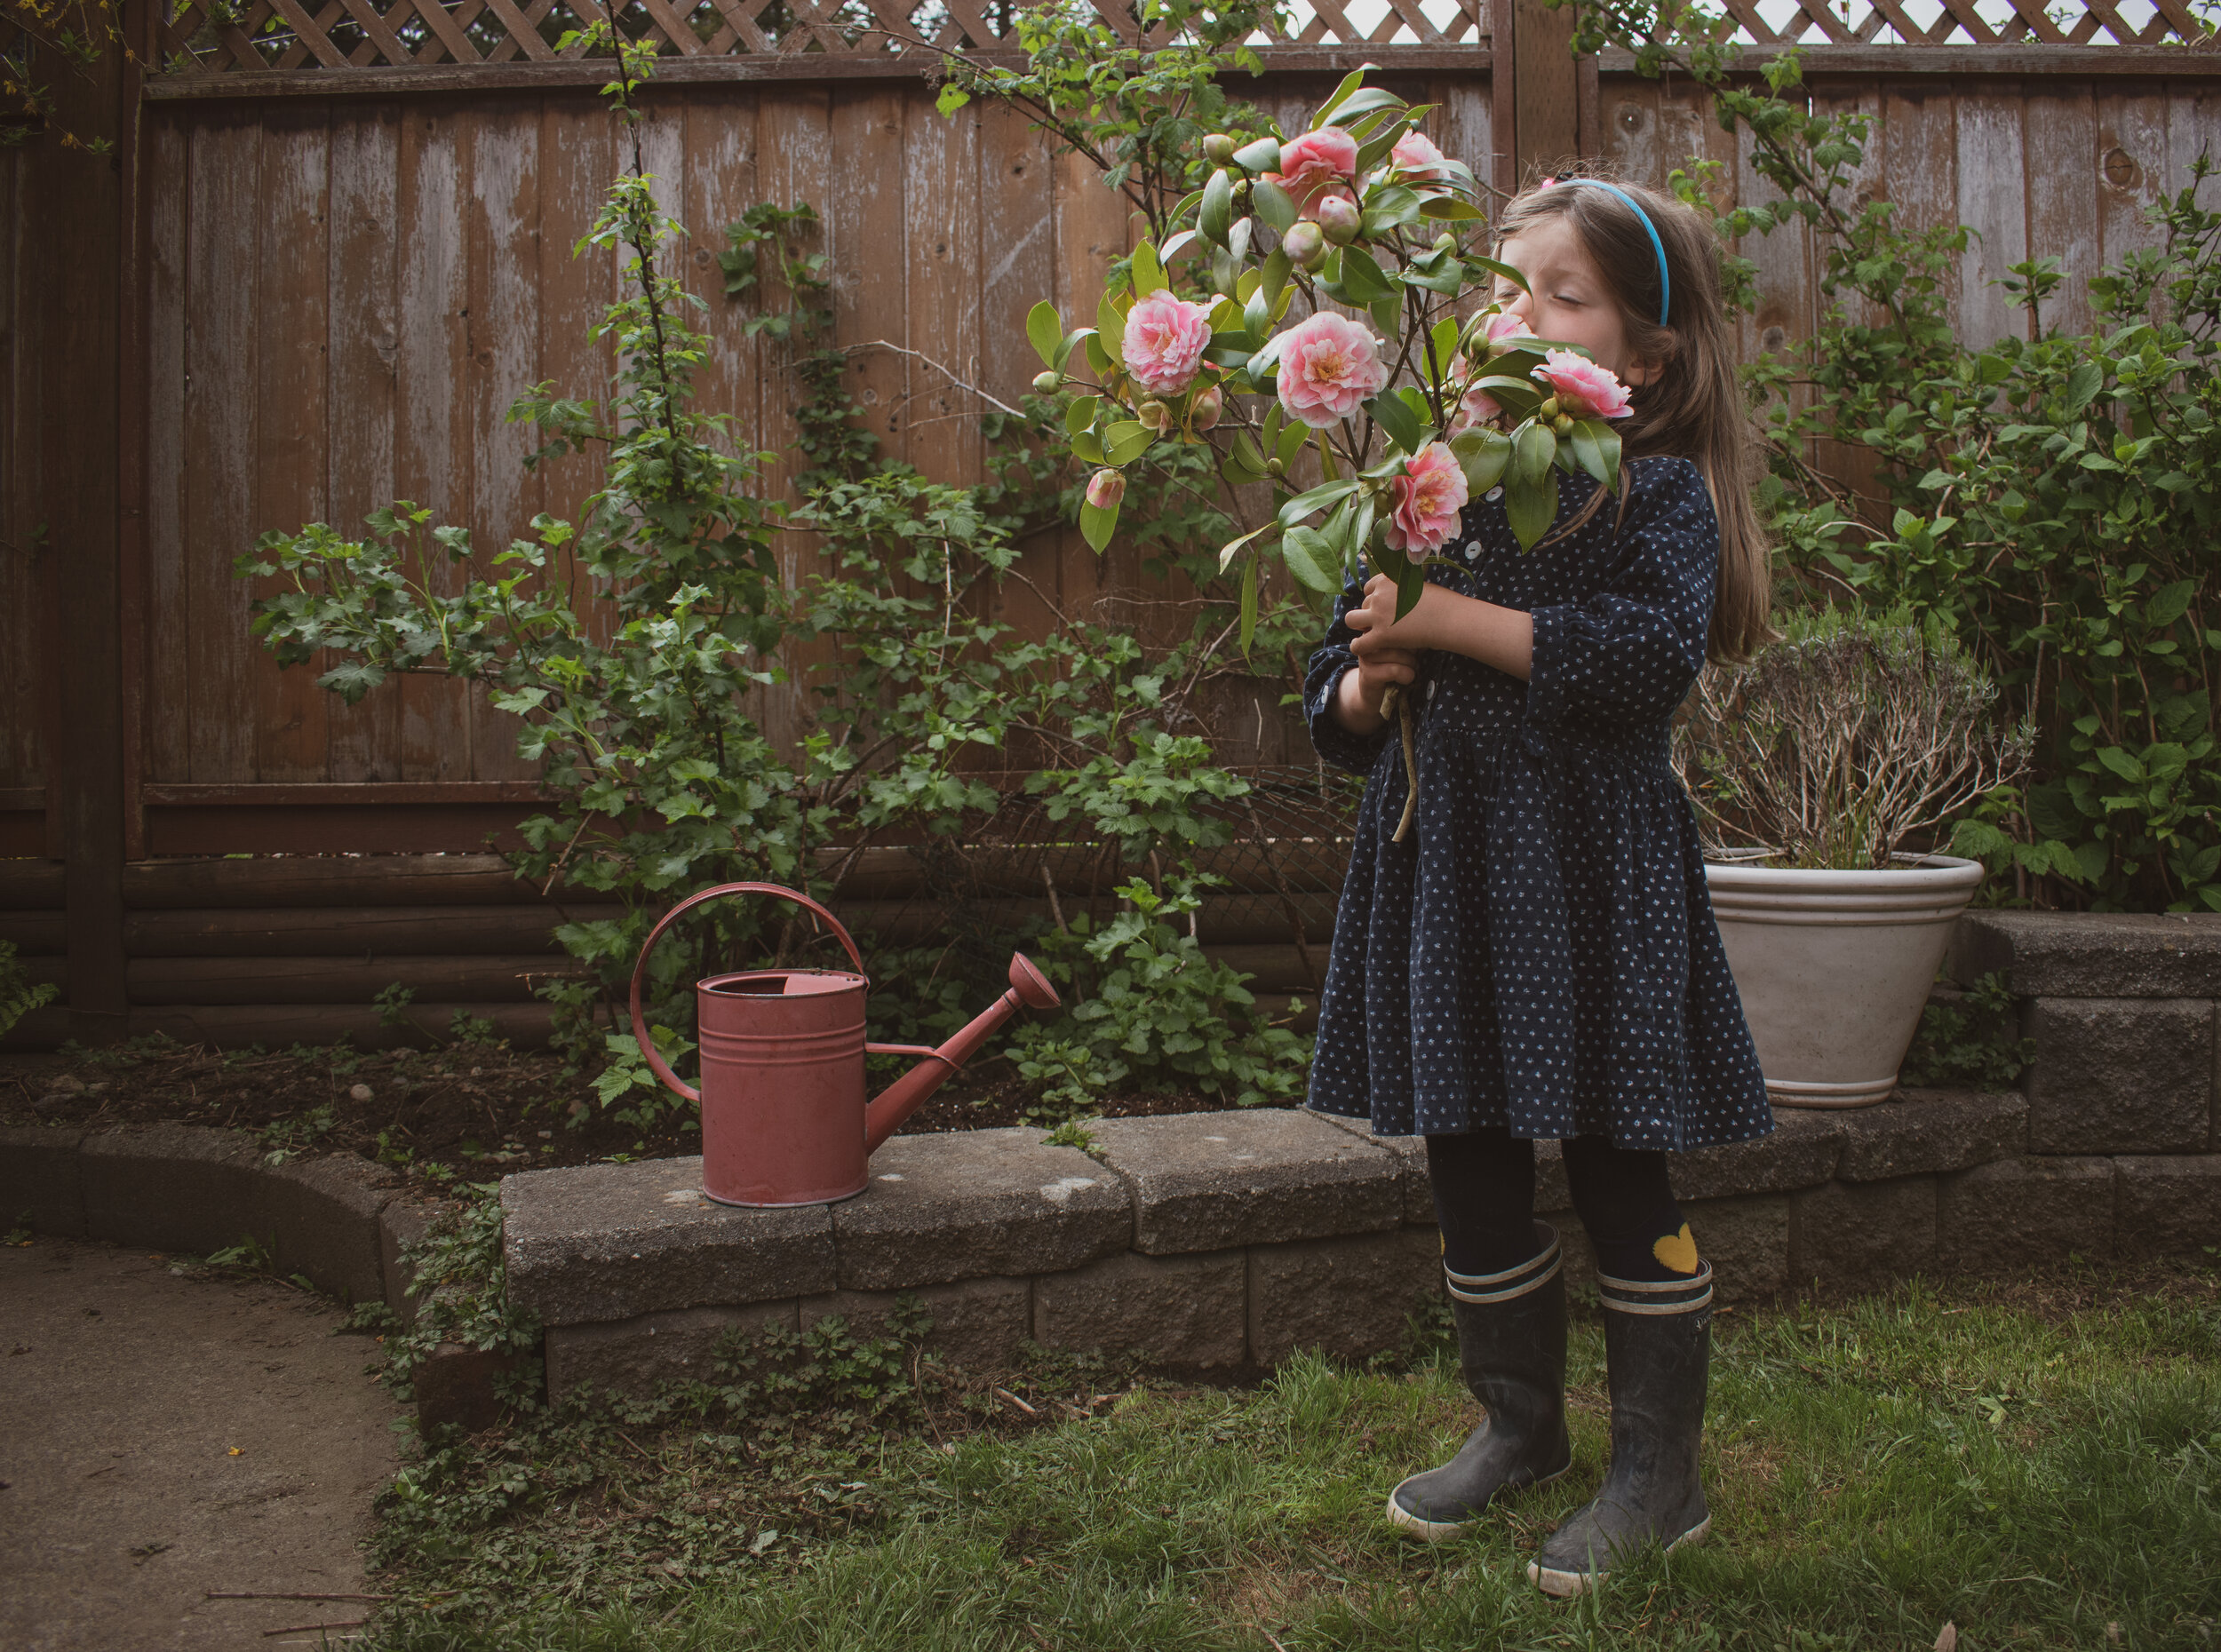 Emily with flowers.jpg